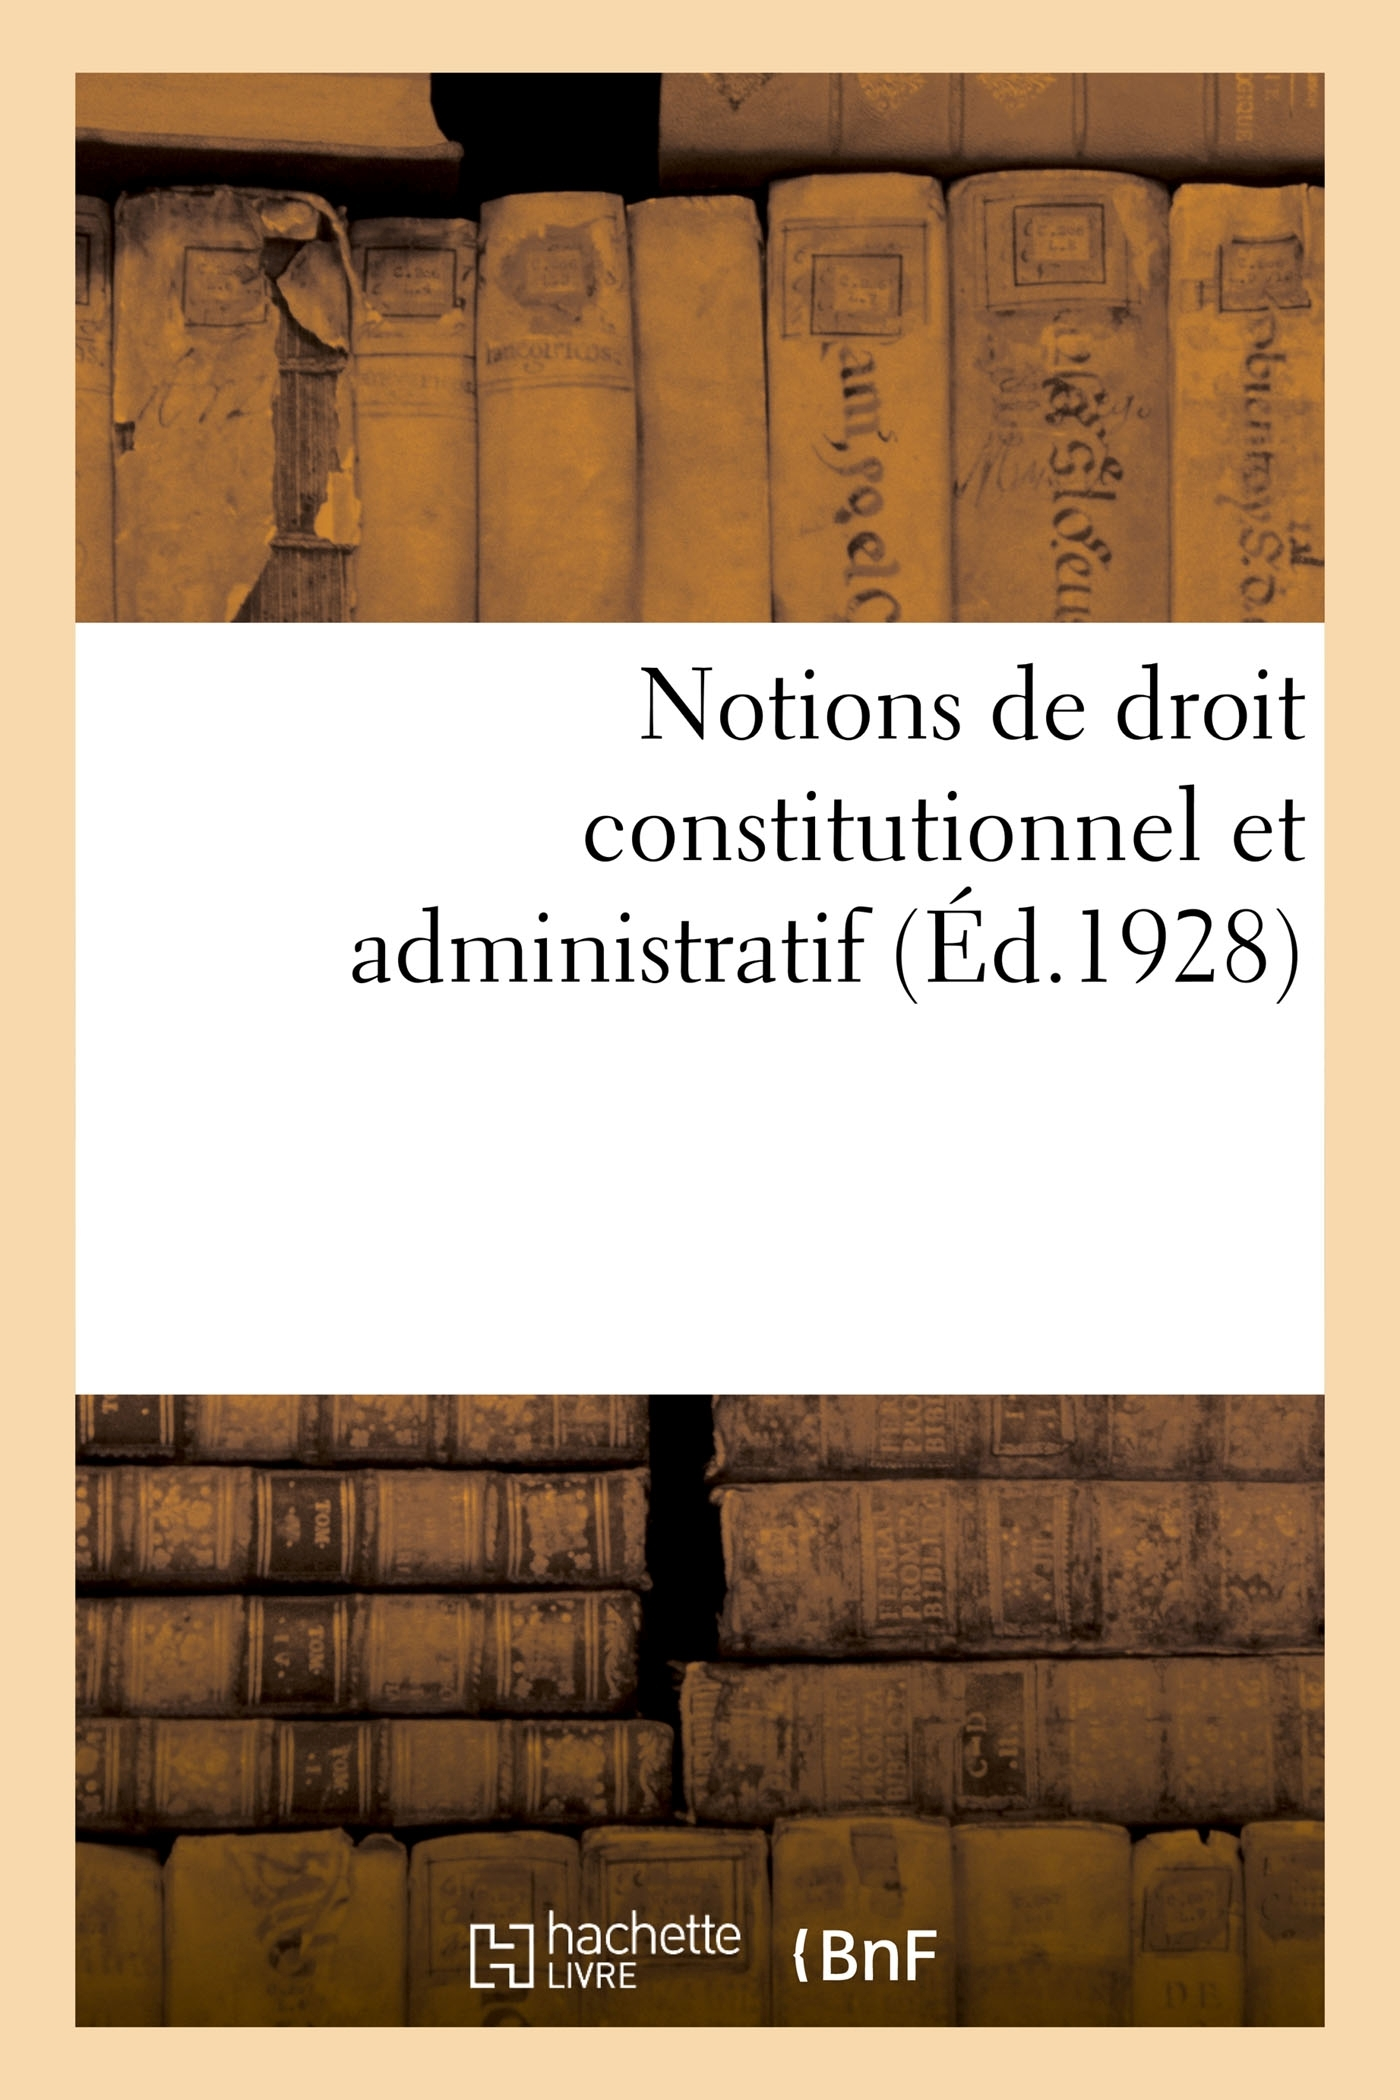 NOTIONS DE DROIT CONSTITUTIONNEL ET ADMINISTRATIF